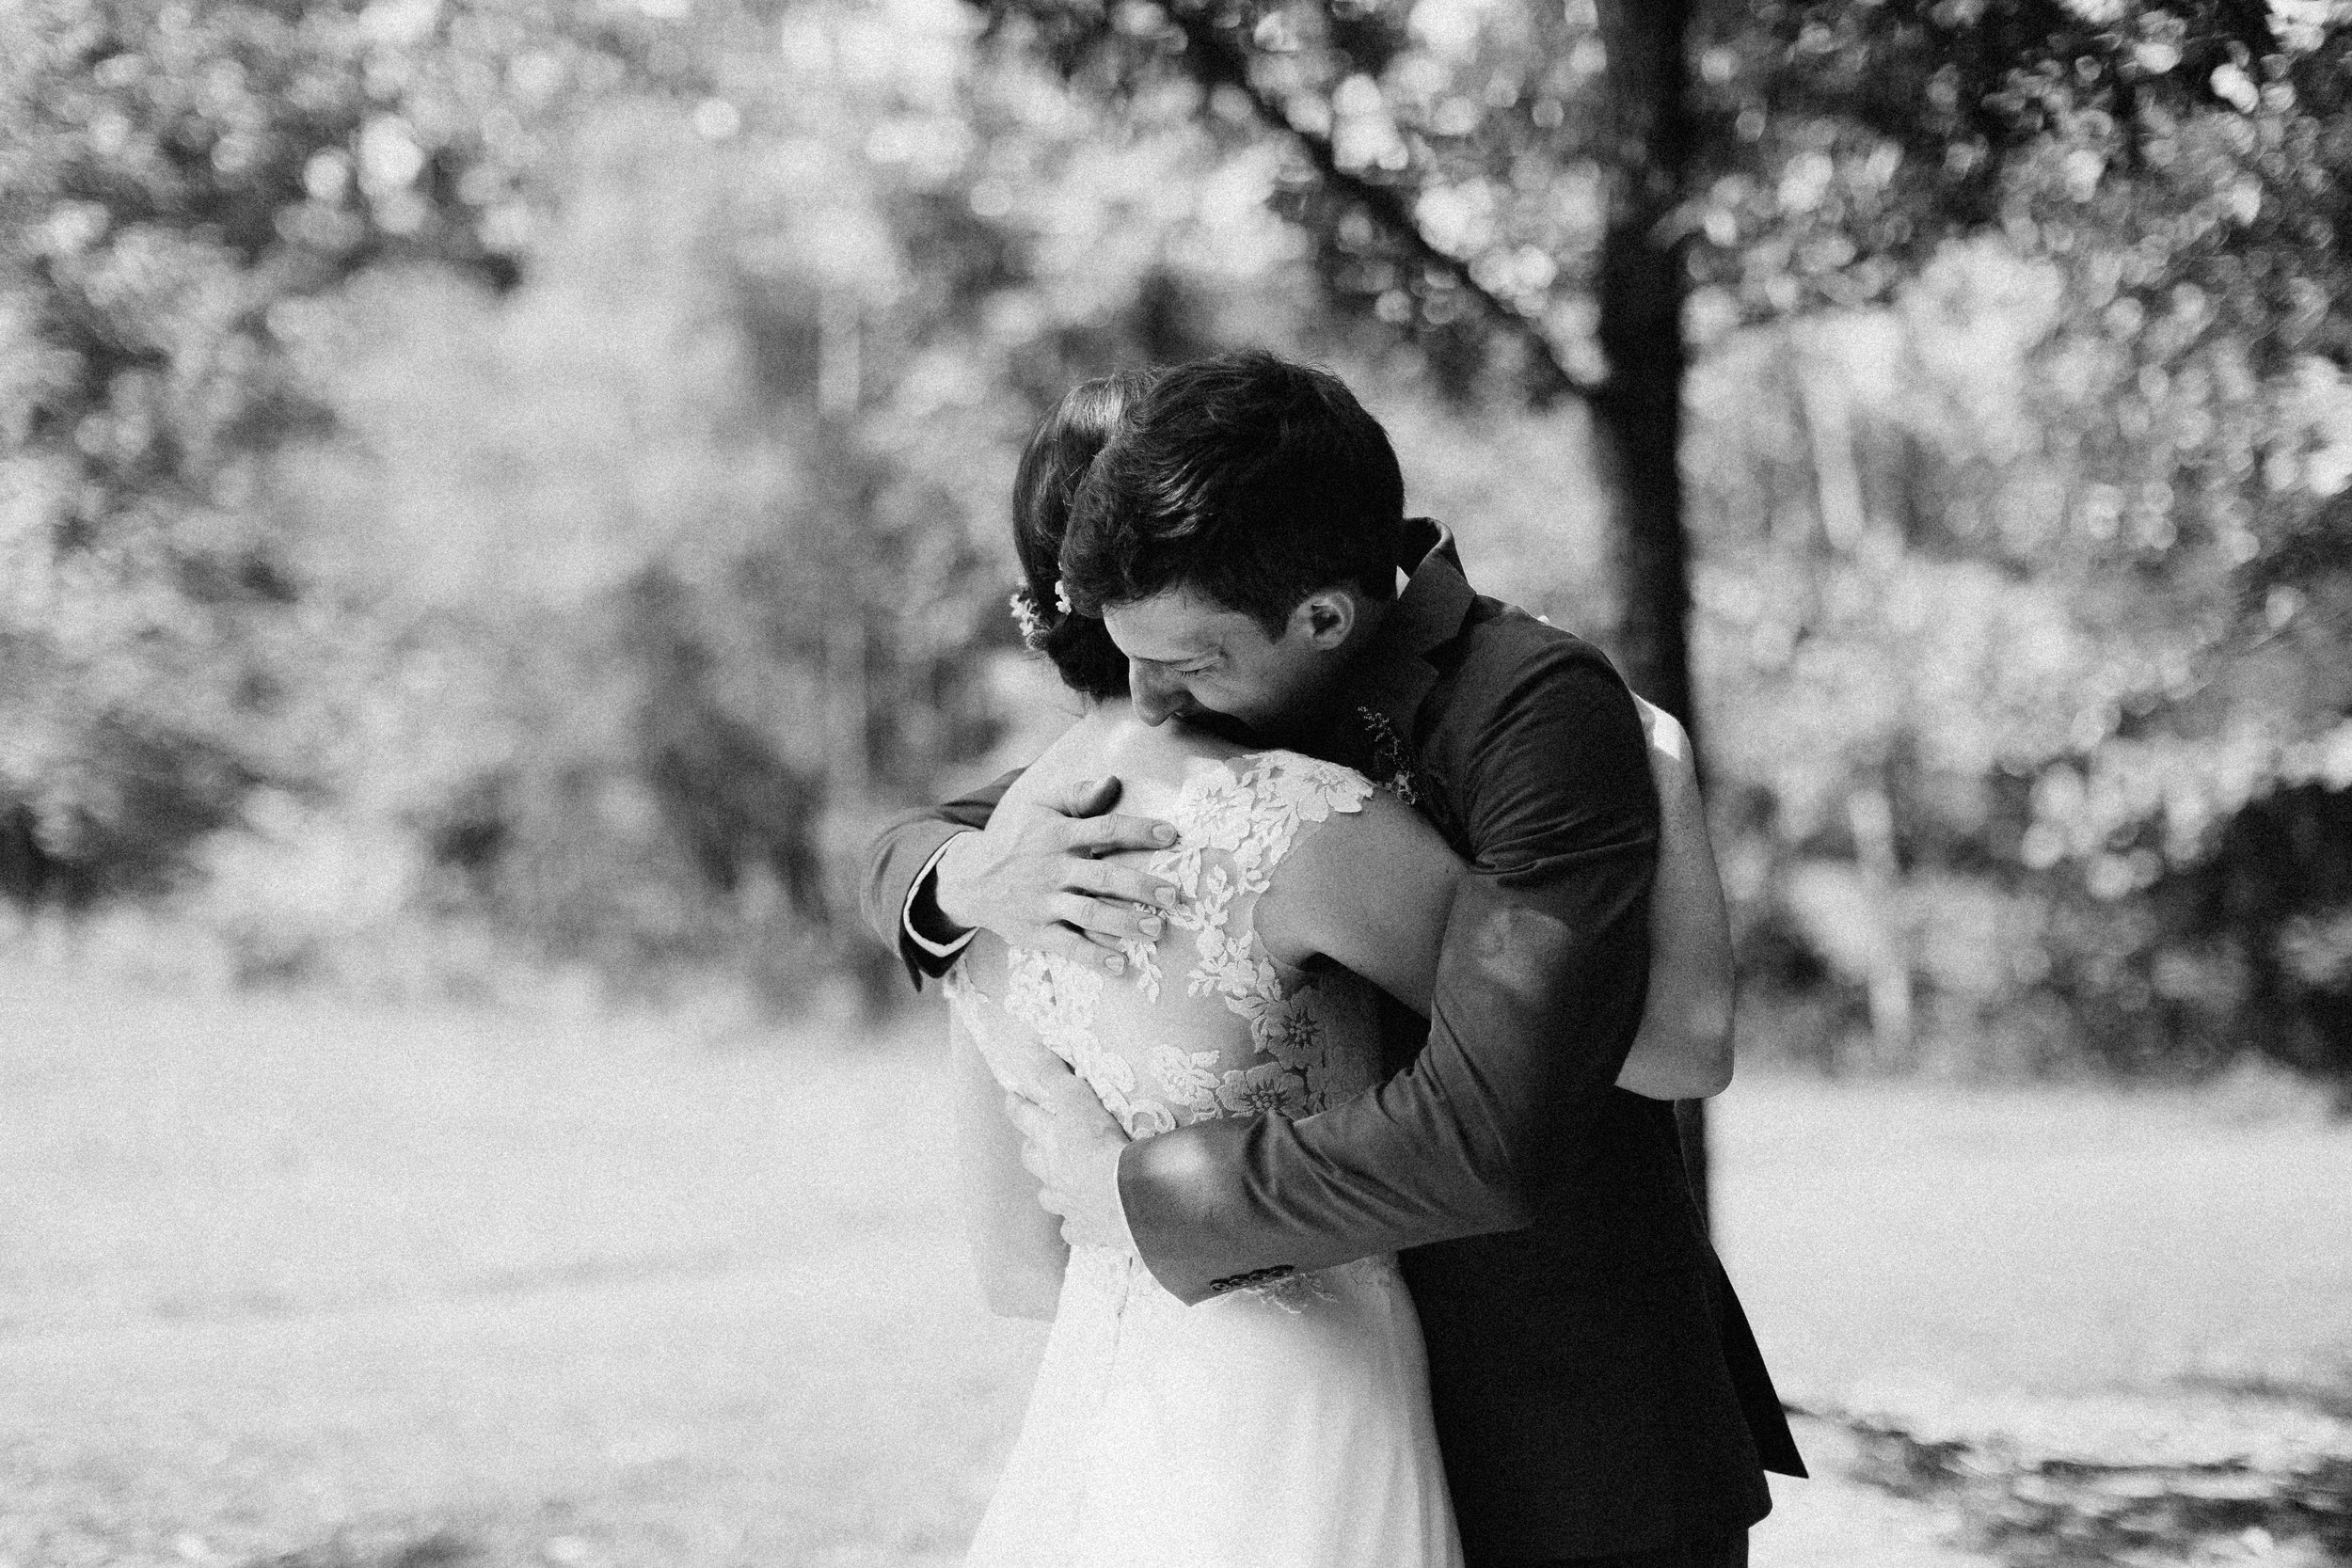 cleveland_georgia_mountain_laurel_farm_natural_classic_timeless_documentary_candid_wedding_emotional_photojournalism_river_west_1244.jpg